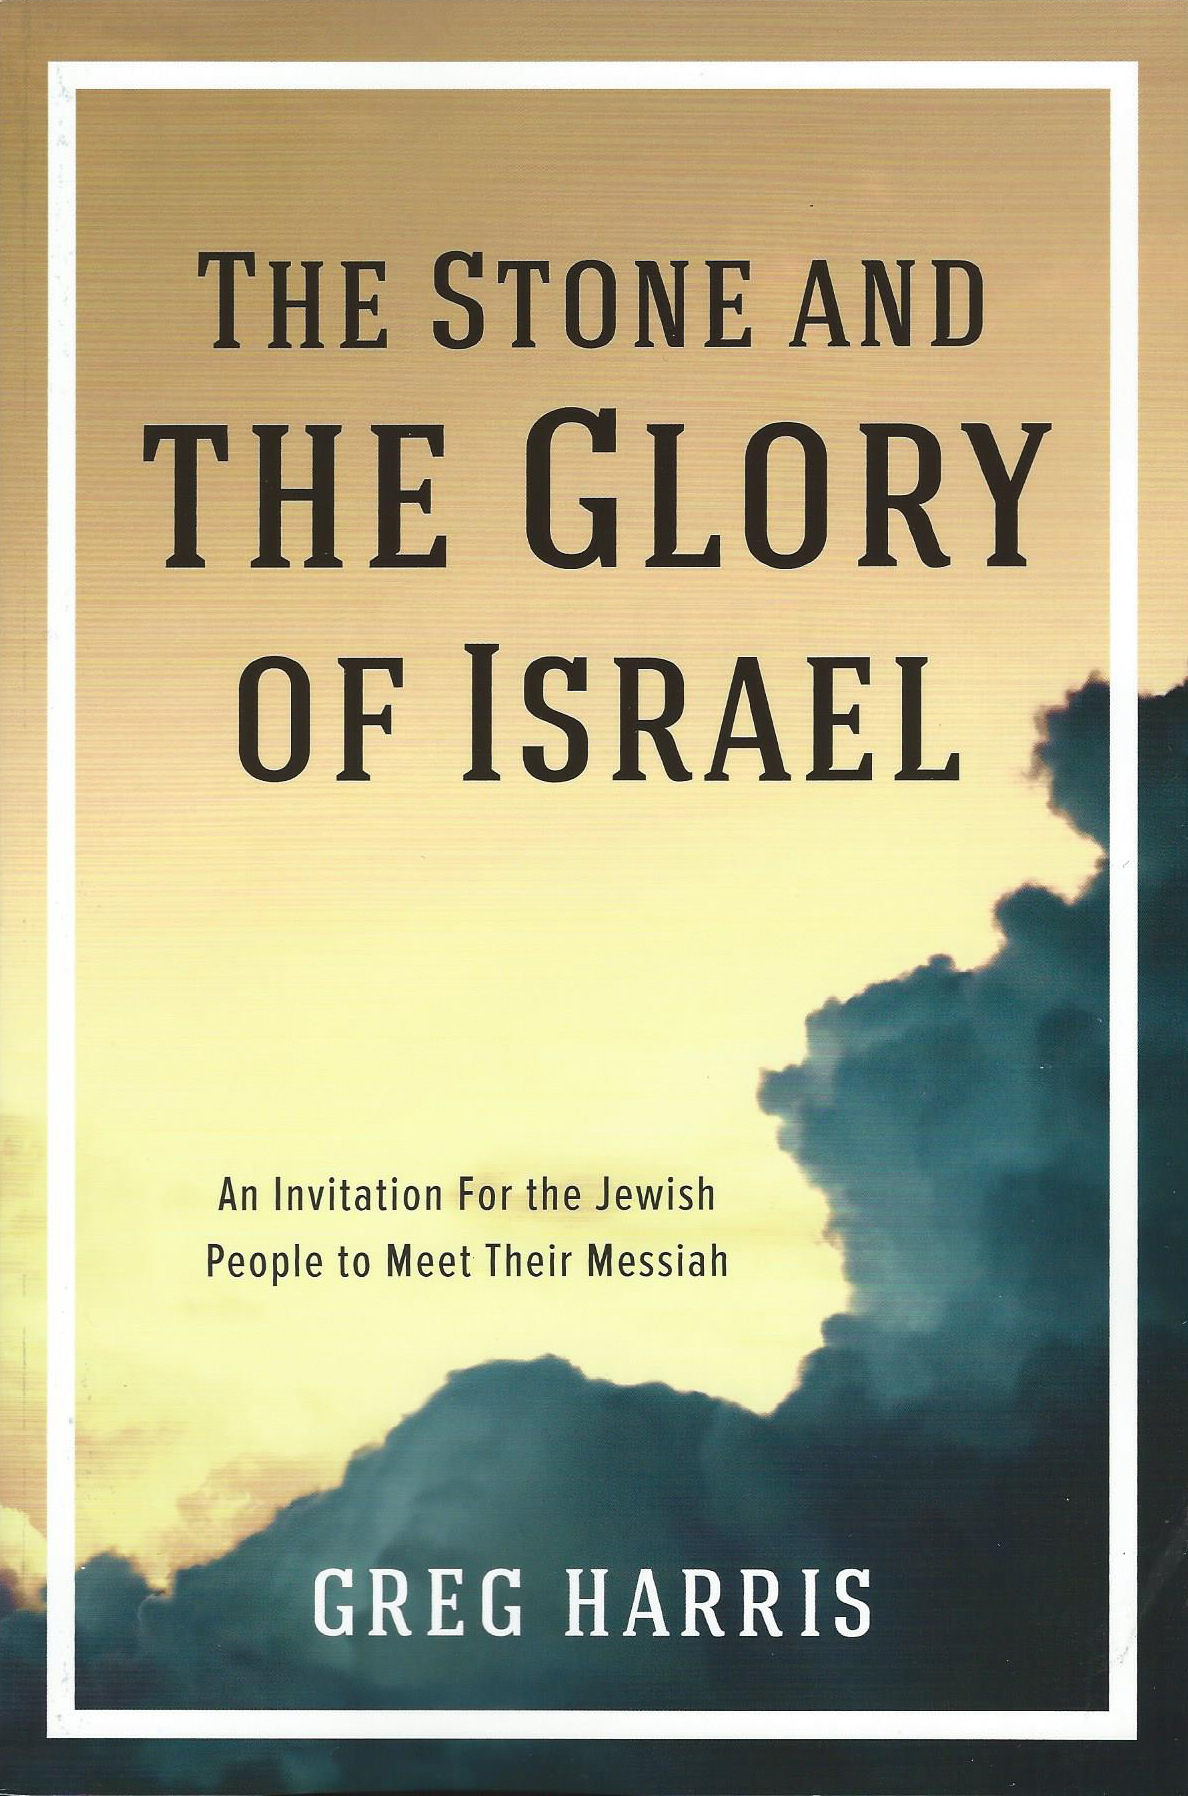 The Stone and the glory of Israel